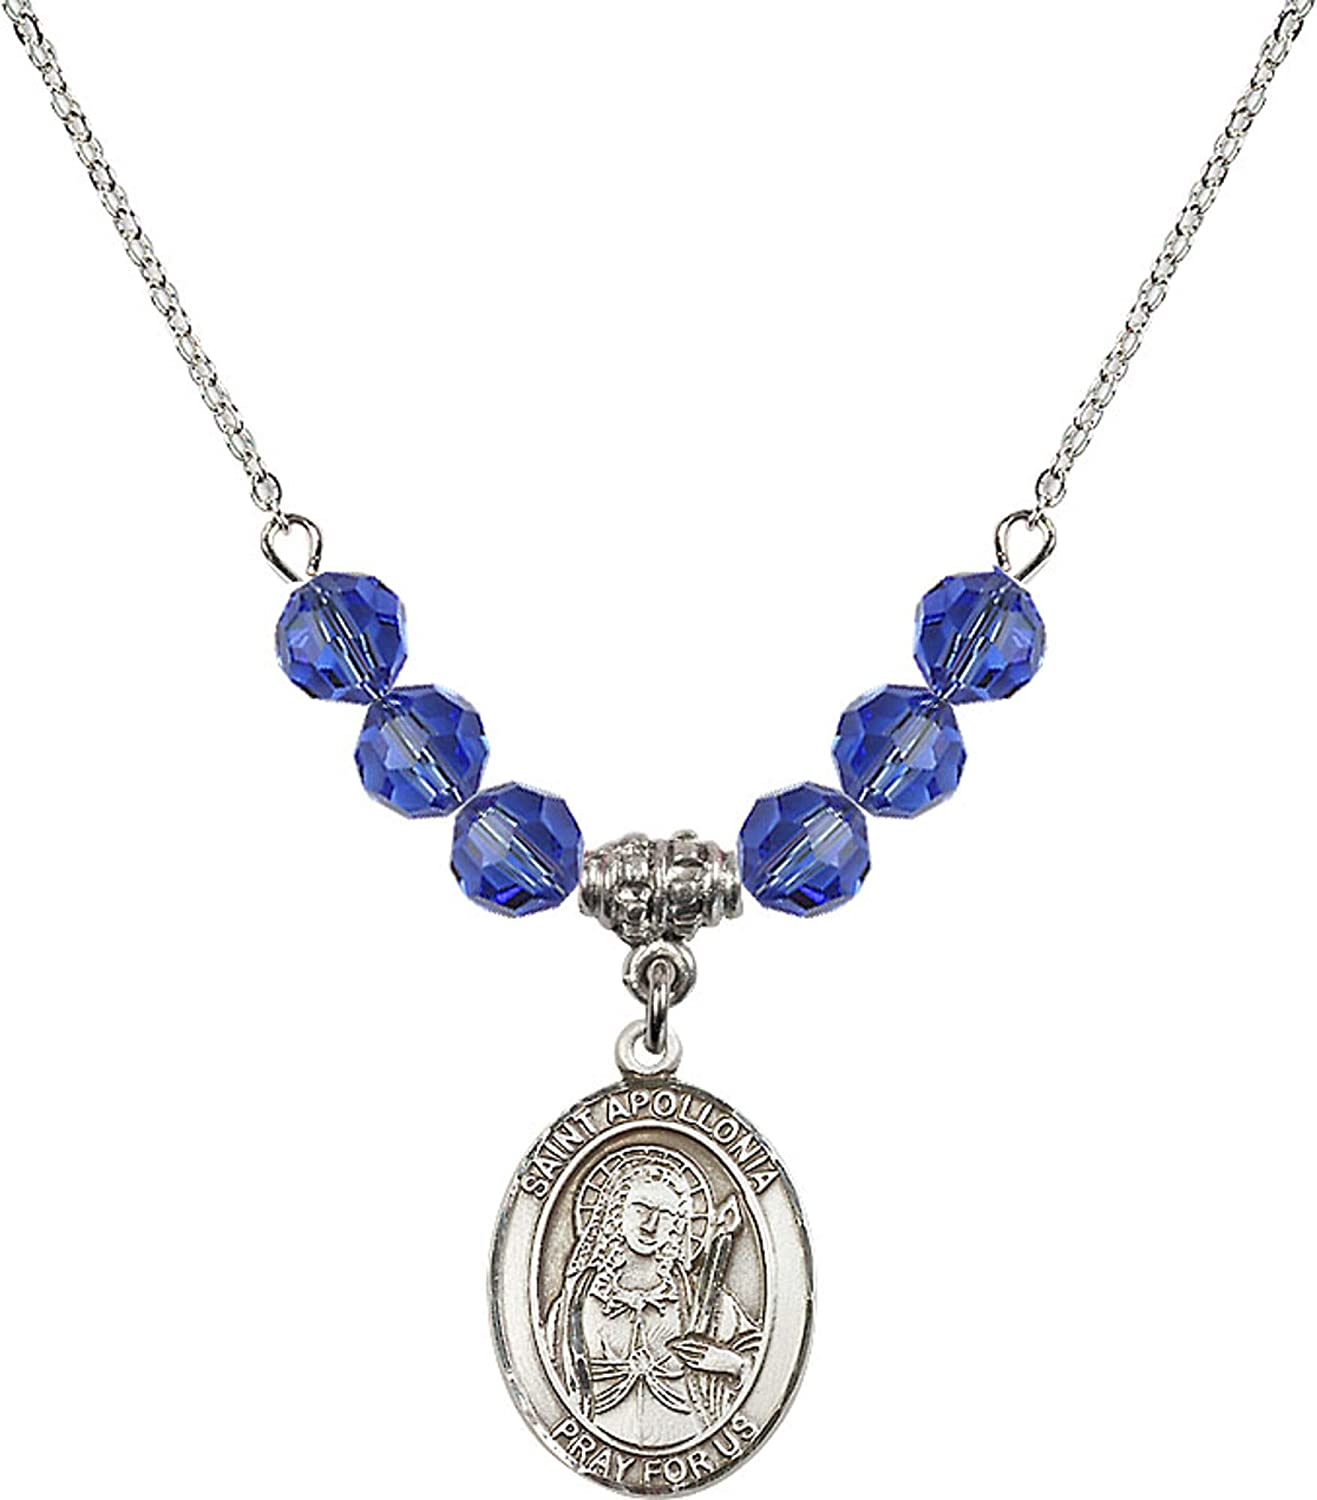 Bonyak Jewelry 18 Inch Rhodium Plated Necklace w// 6mm Blue September Birth Month Stone Beads and Saint Apollonia Charm